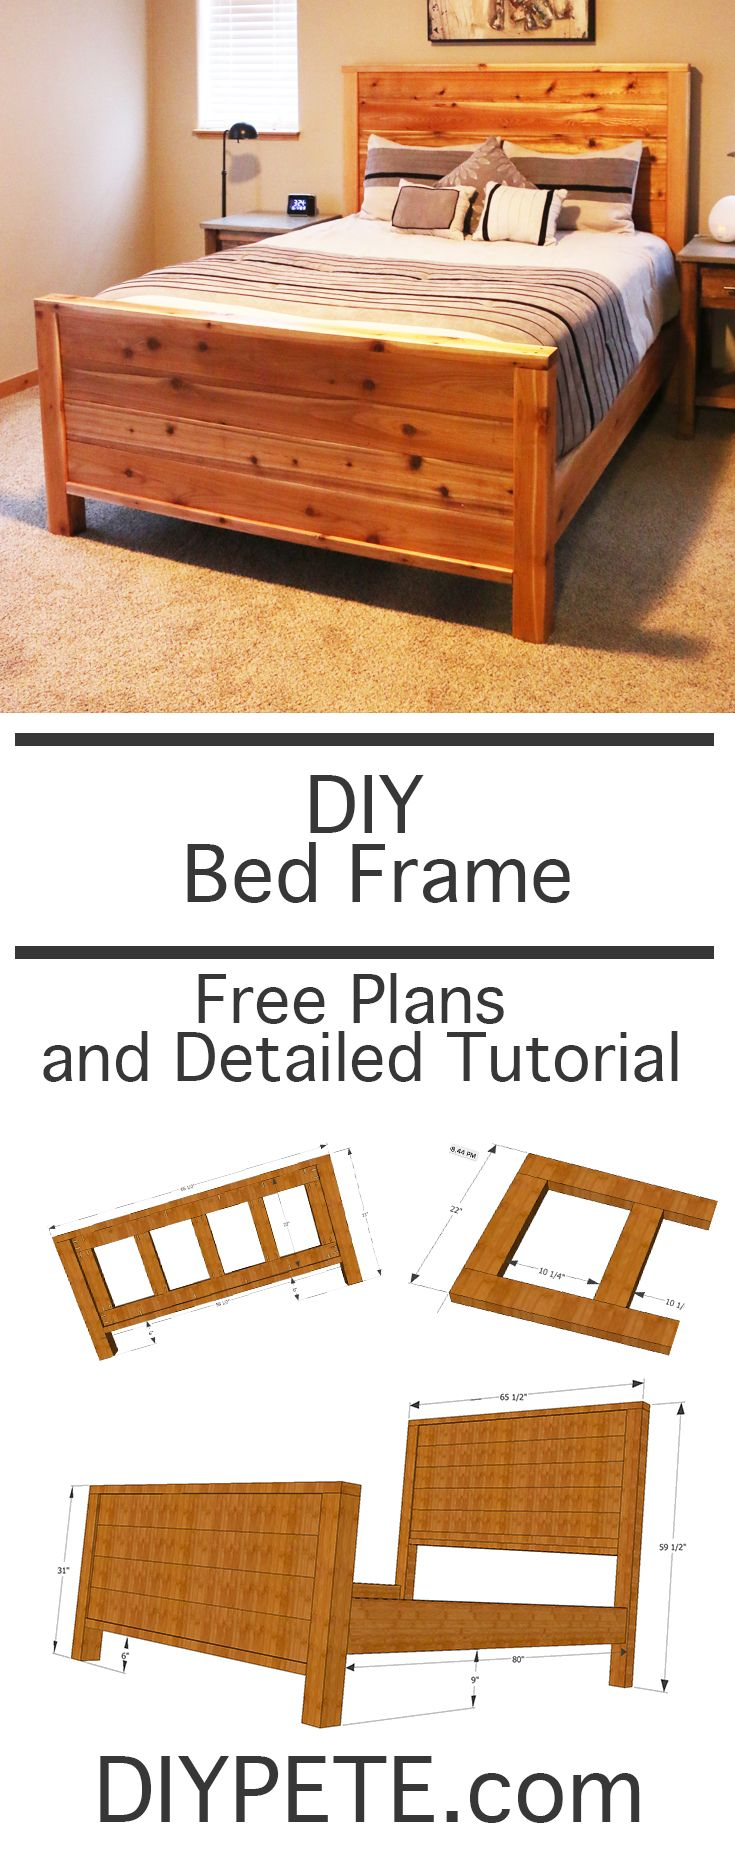 How to make a DIY Bed Frame #minwax   DIY Projects that Rock ...